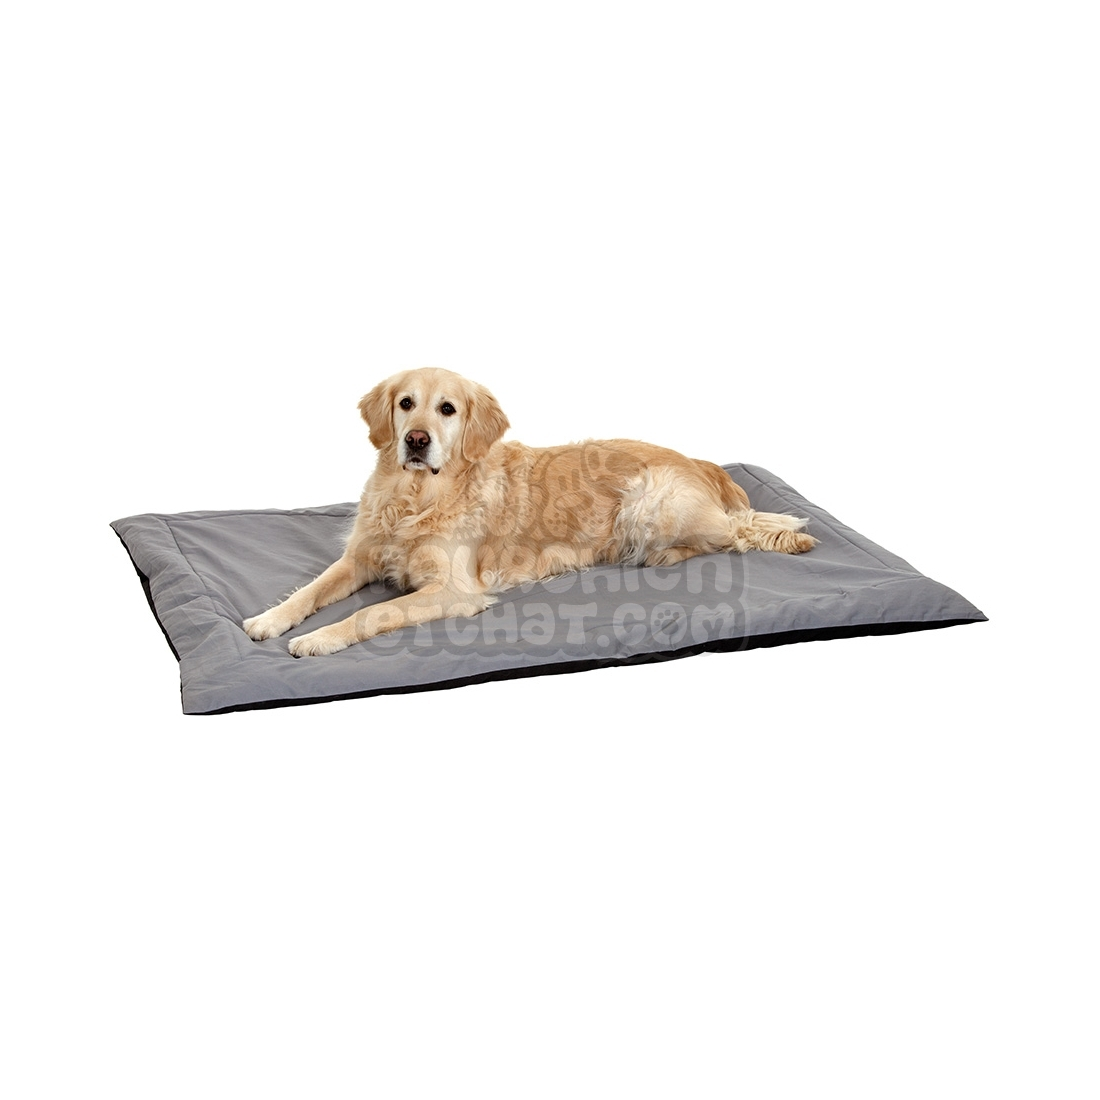 tapis pour chien doc bed noir et gris. Black Bedroom Furniture Sets. Home Design Ideas